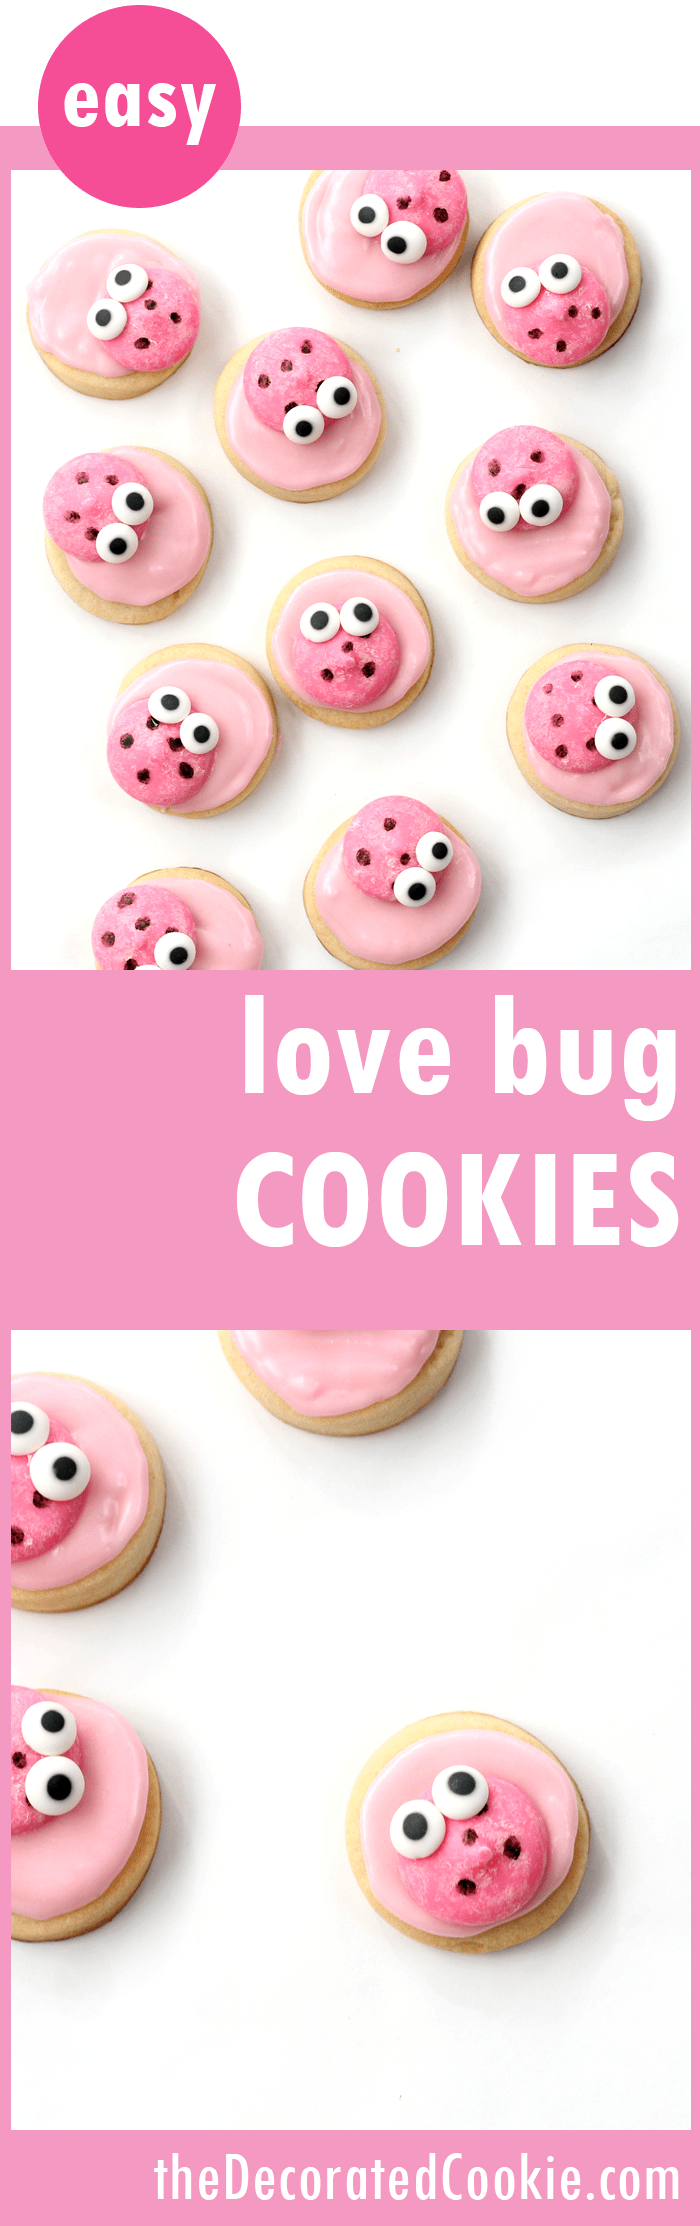 love bug cookies for Valentine's Day